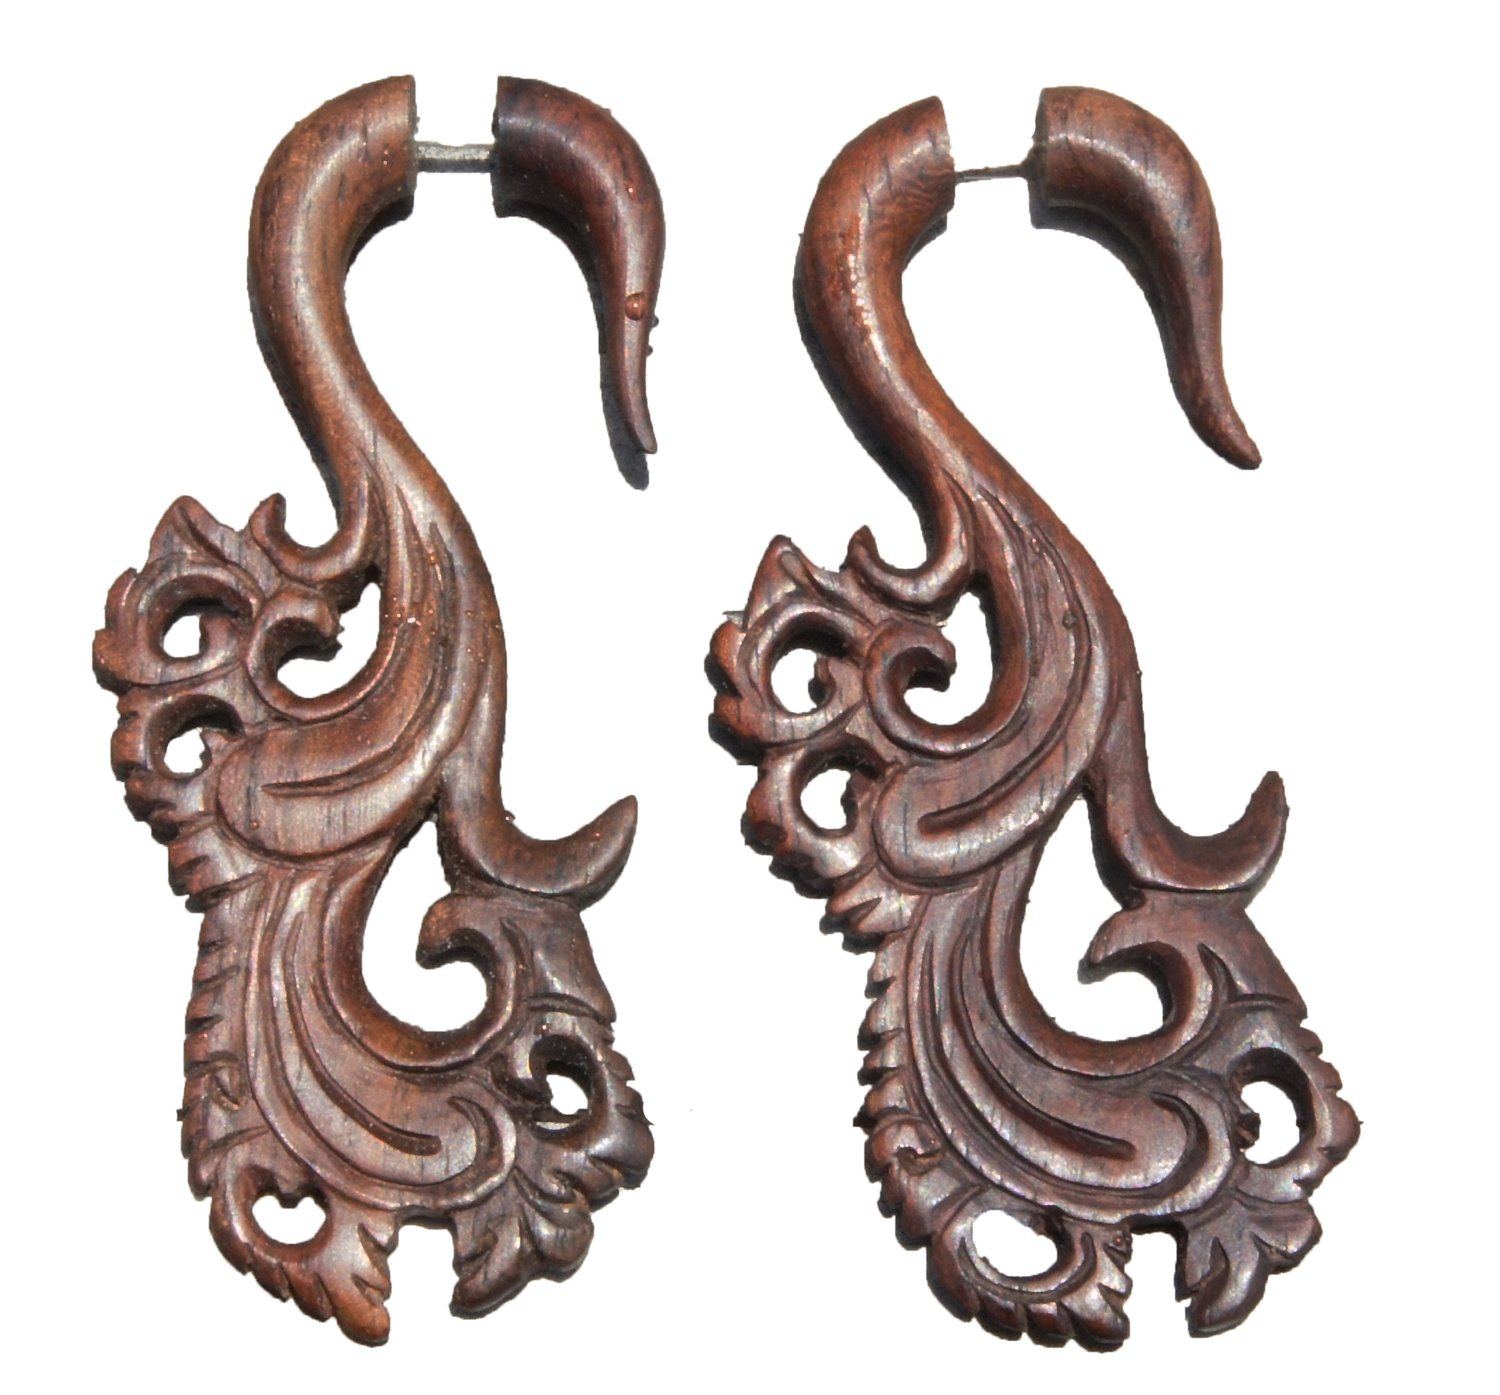 Bandaru Organics Illusion Sono Wood Floral Carved Hangers